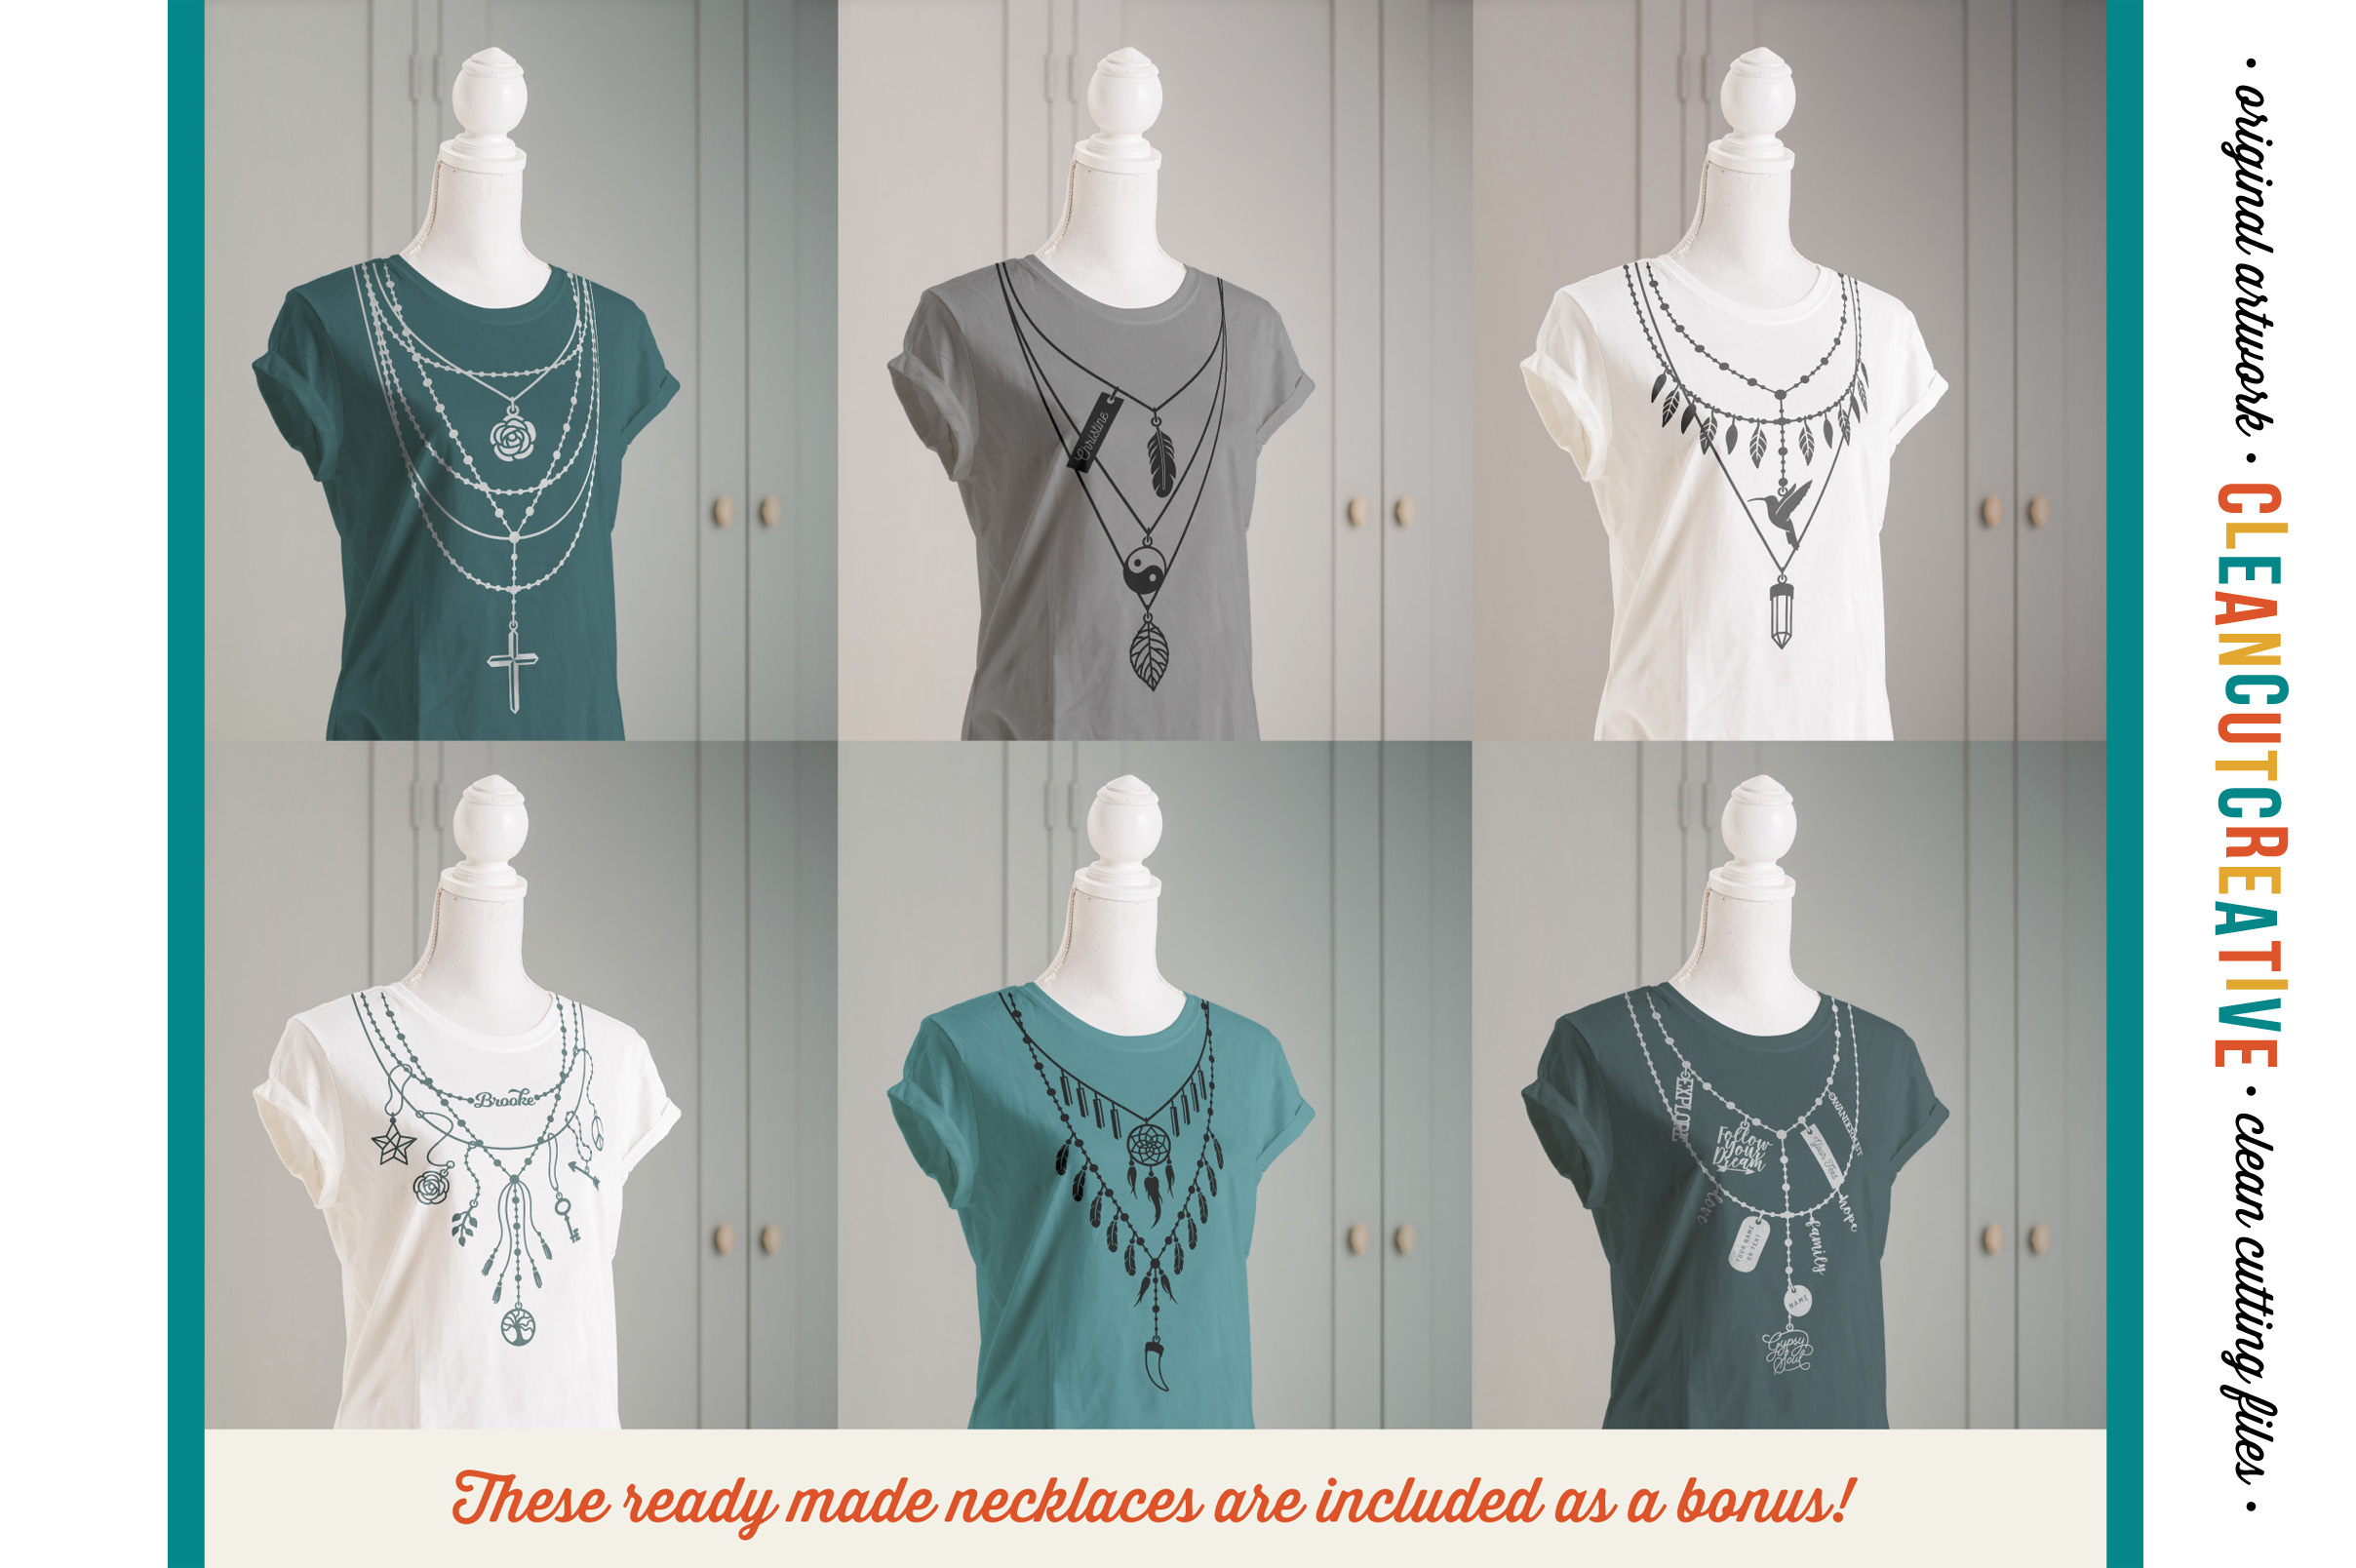 The Nifty NECKLACE TOOLKIT -  DIY Layered Necklace T-shirt Design in Boho/Ibiza Style example image 2